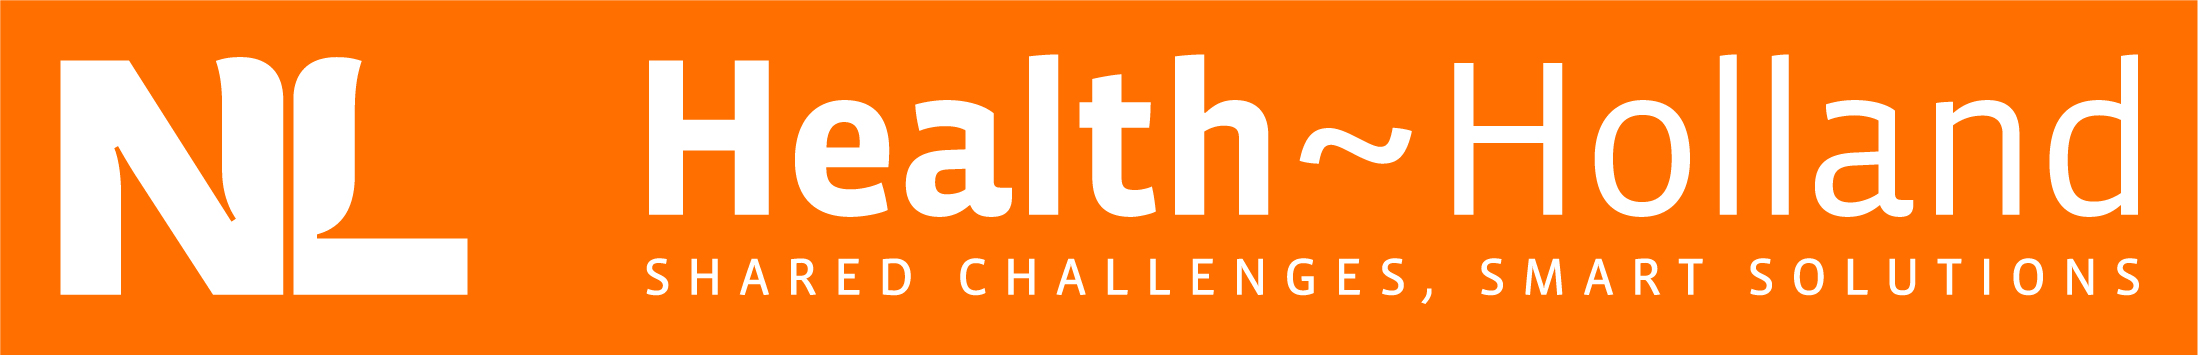 Health Holland